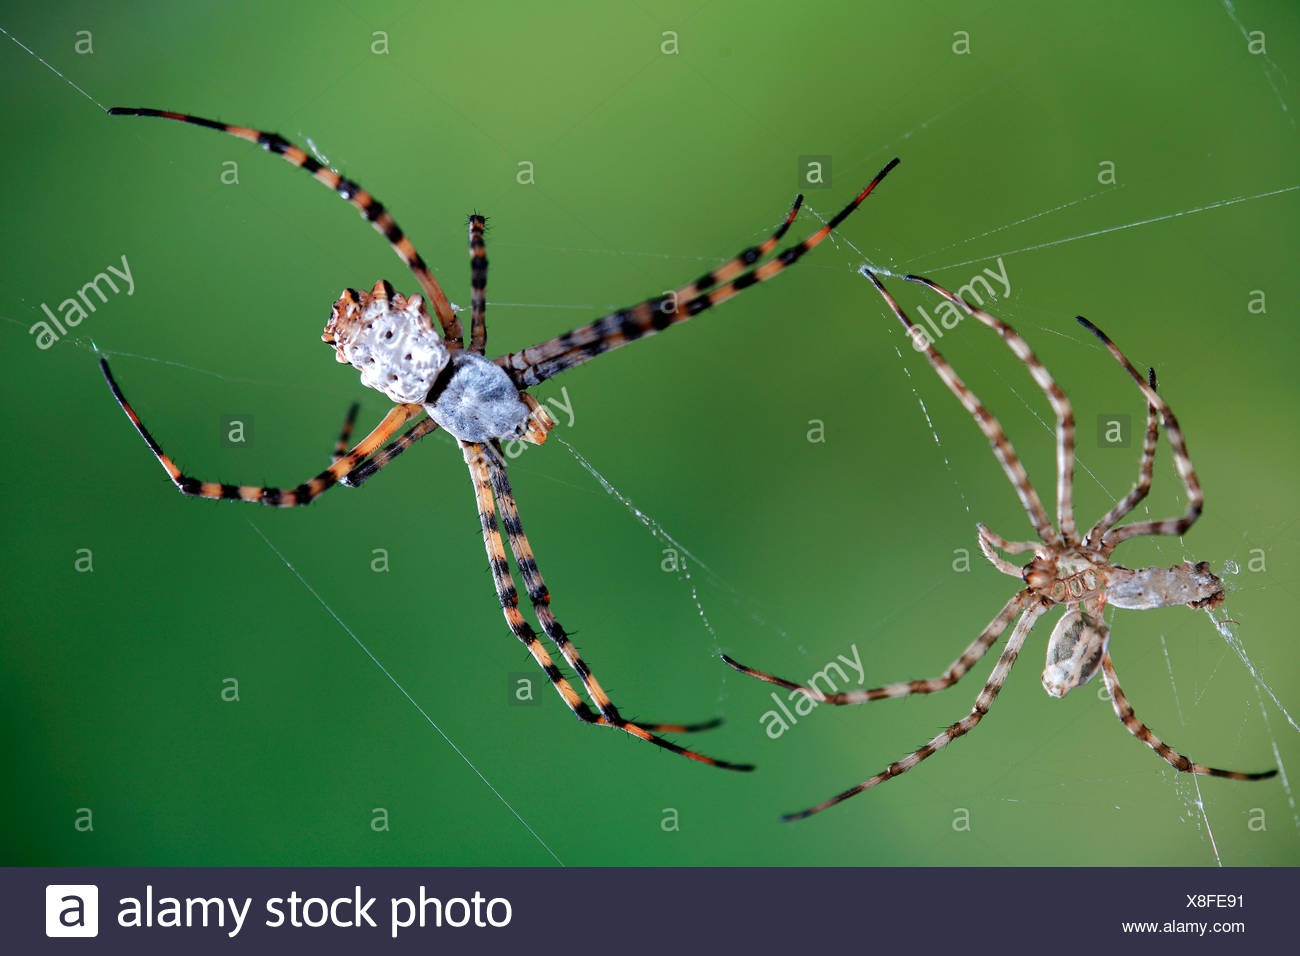 Lobed argiope spider Argiope lobata with shed skin Spain Europe - Stock Image